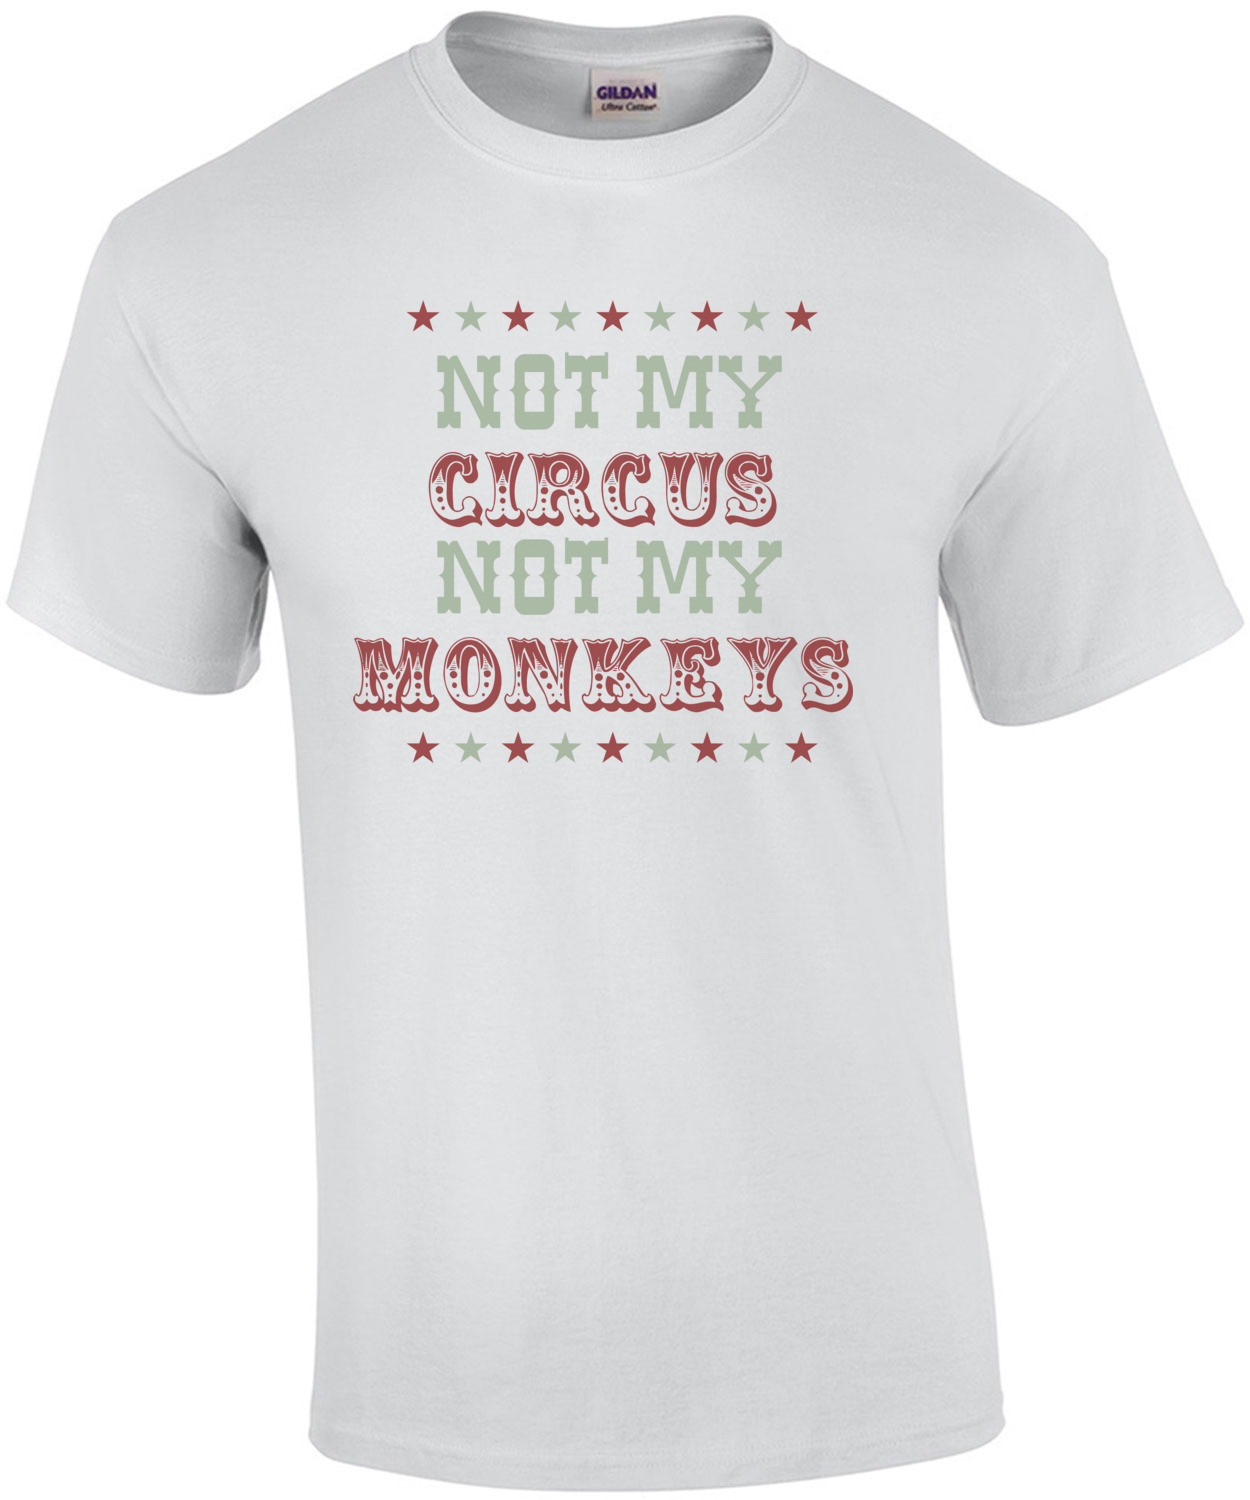 Not my circus not my monkeys - Funny T-Shirt